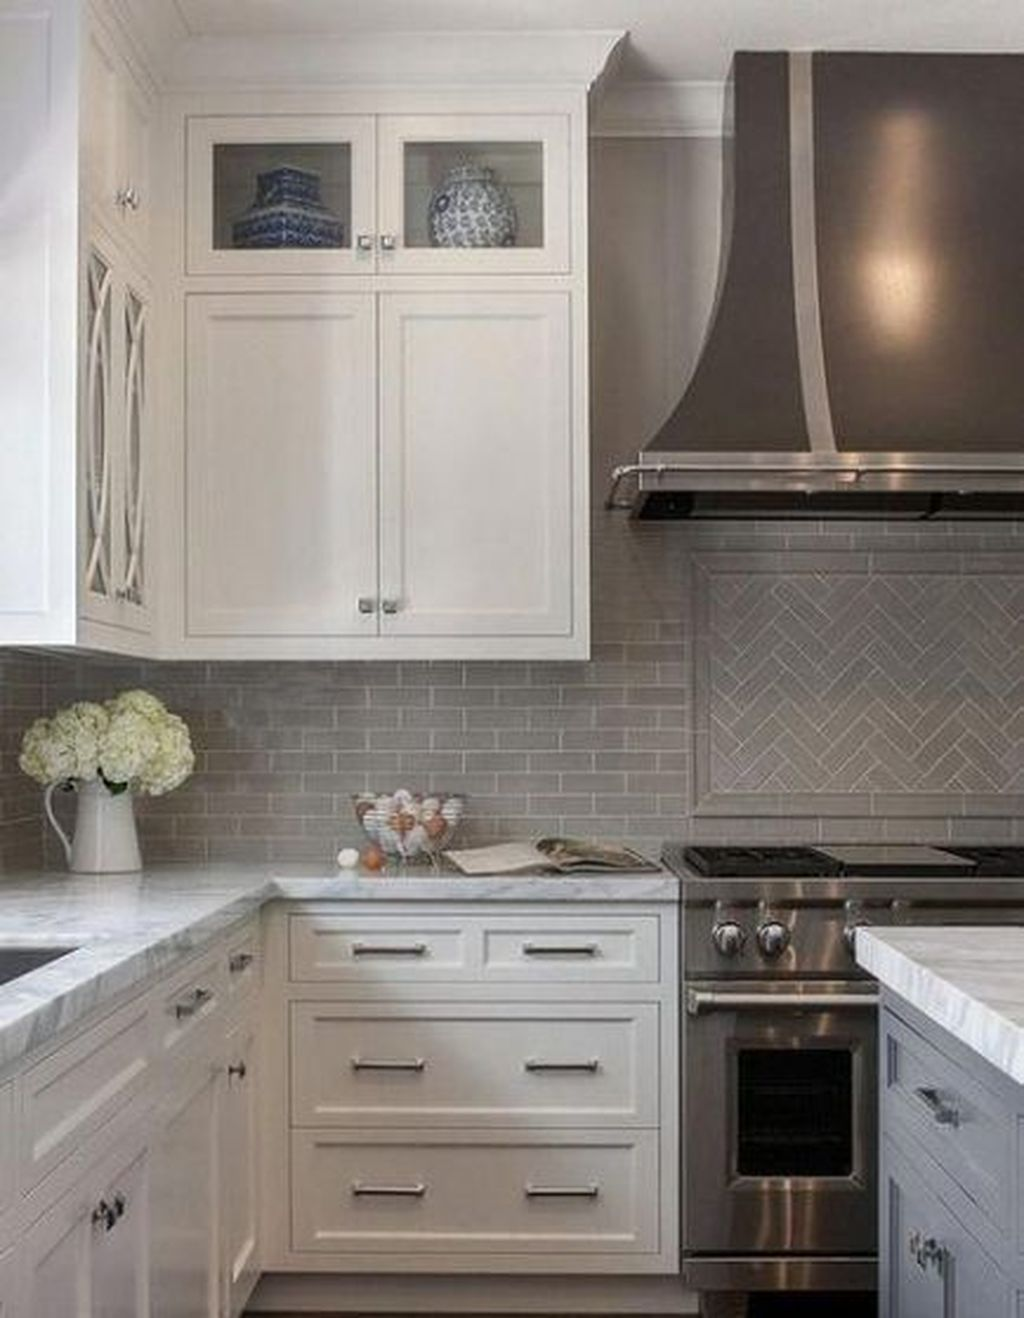 36 Classy Kitchen Remodeling Ideas On A Budget This Year Classy